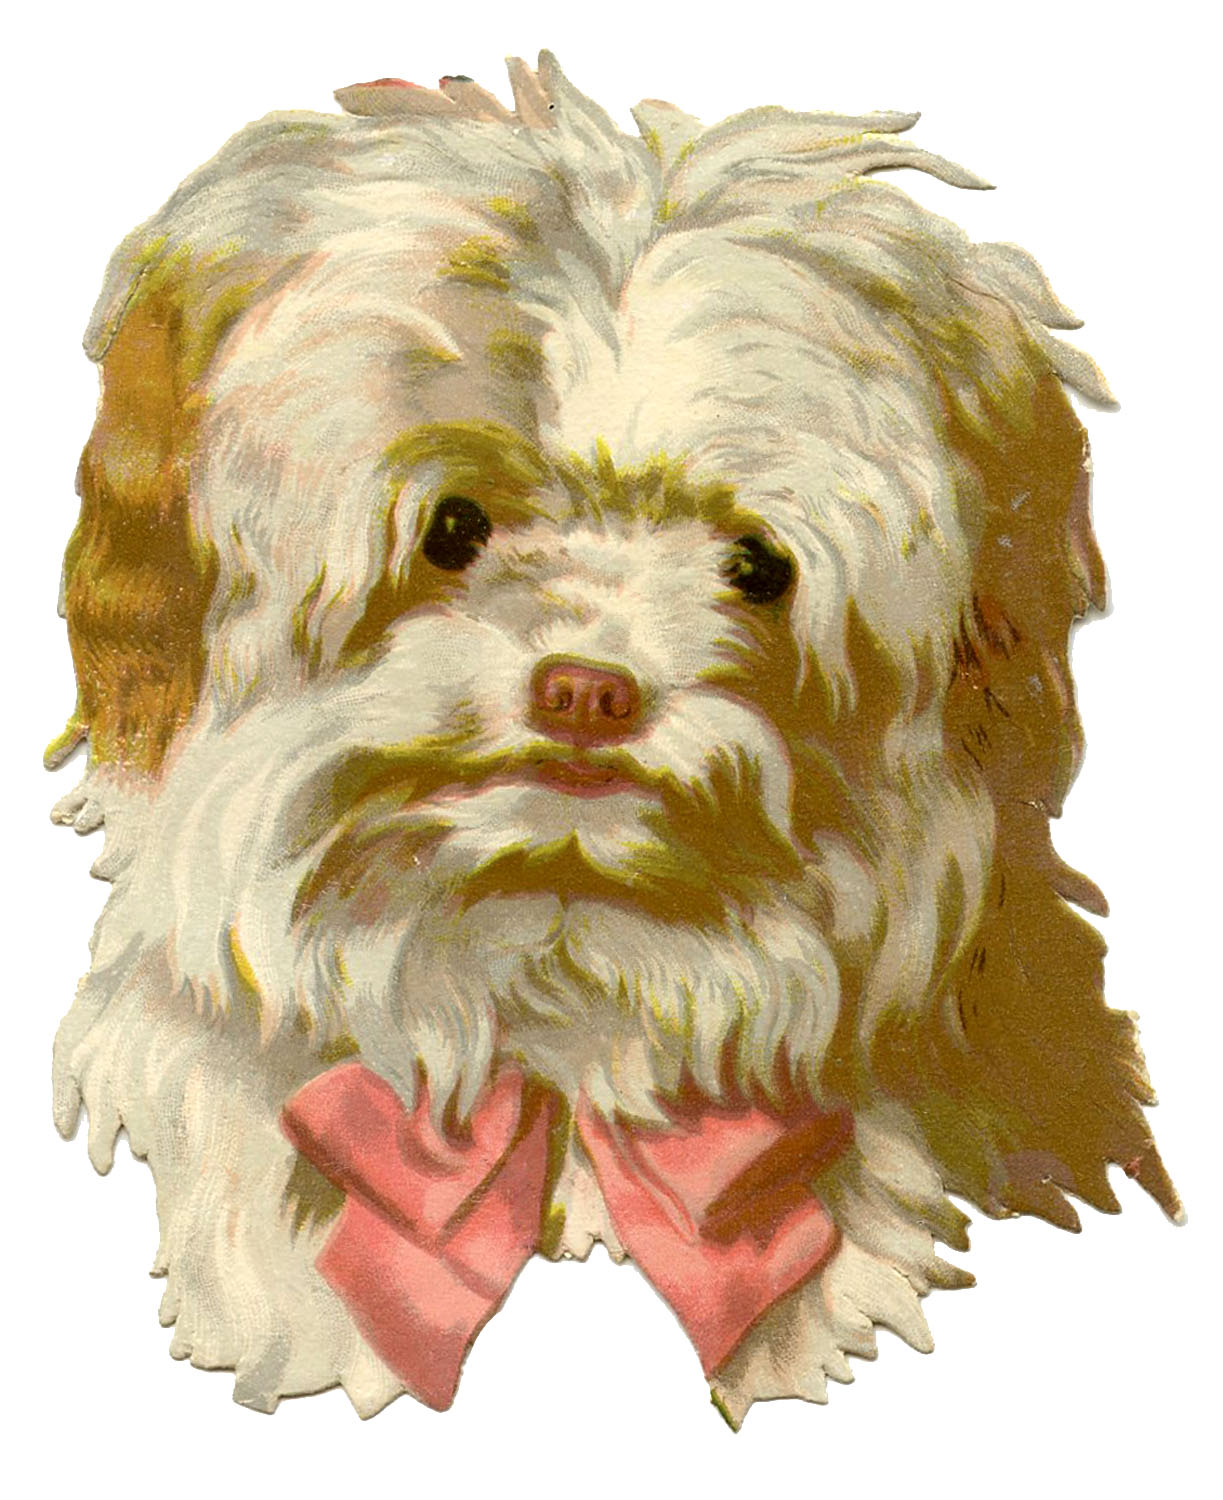 http://thegraphicsfairy.com/wp-content/uploads/2013/06/Vintage-Dog-Image-Scruffy-GraphicsFairy.jpg